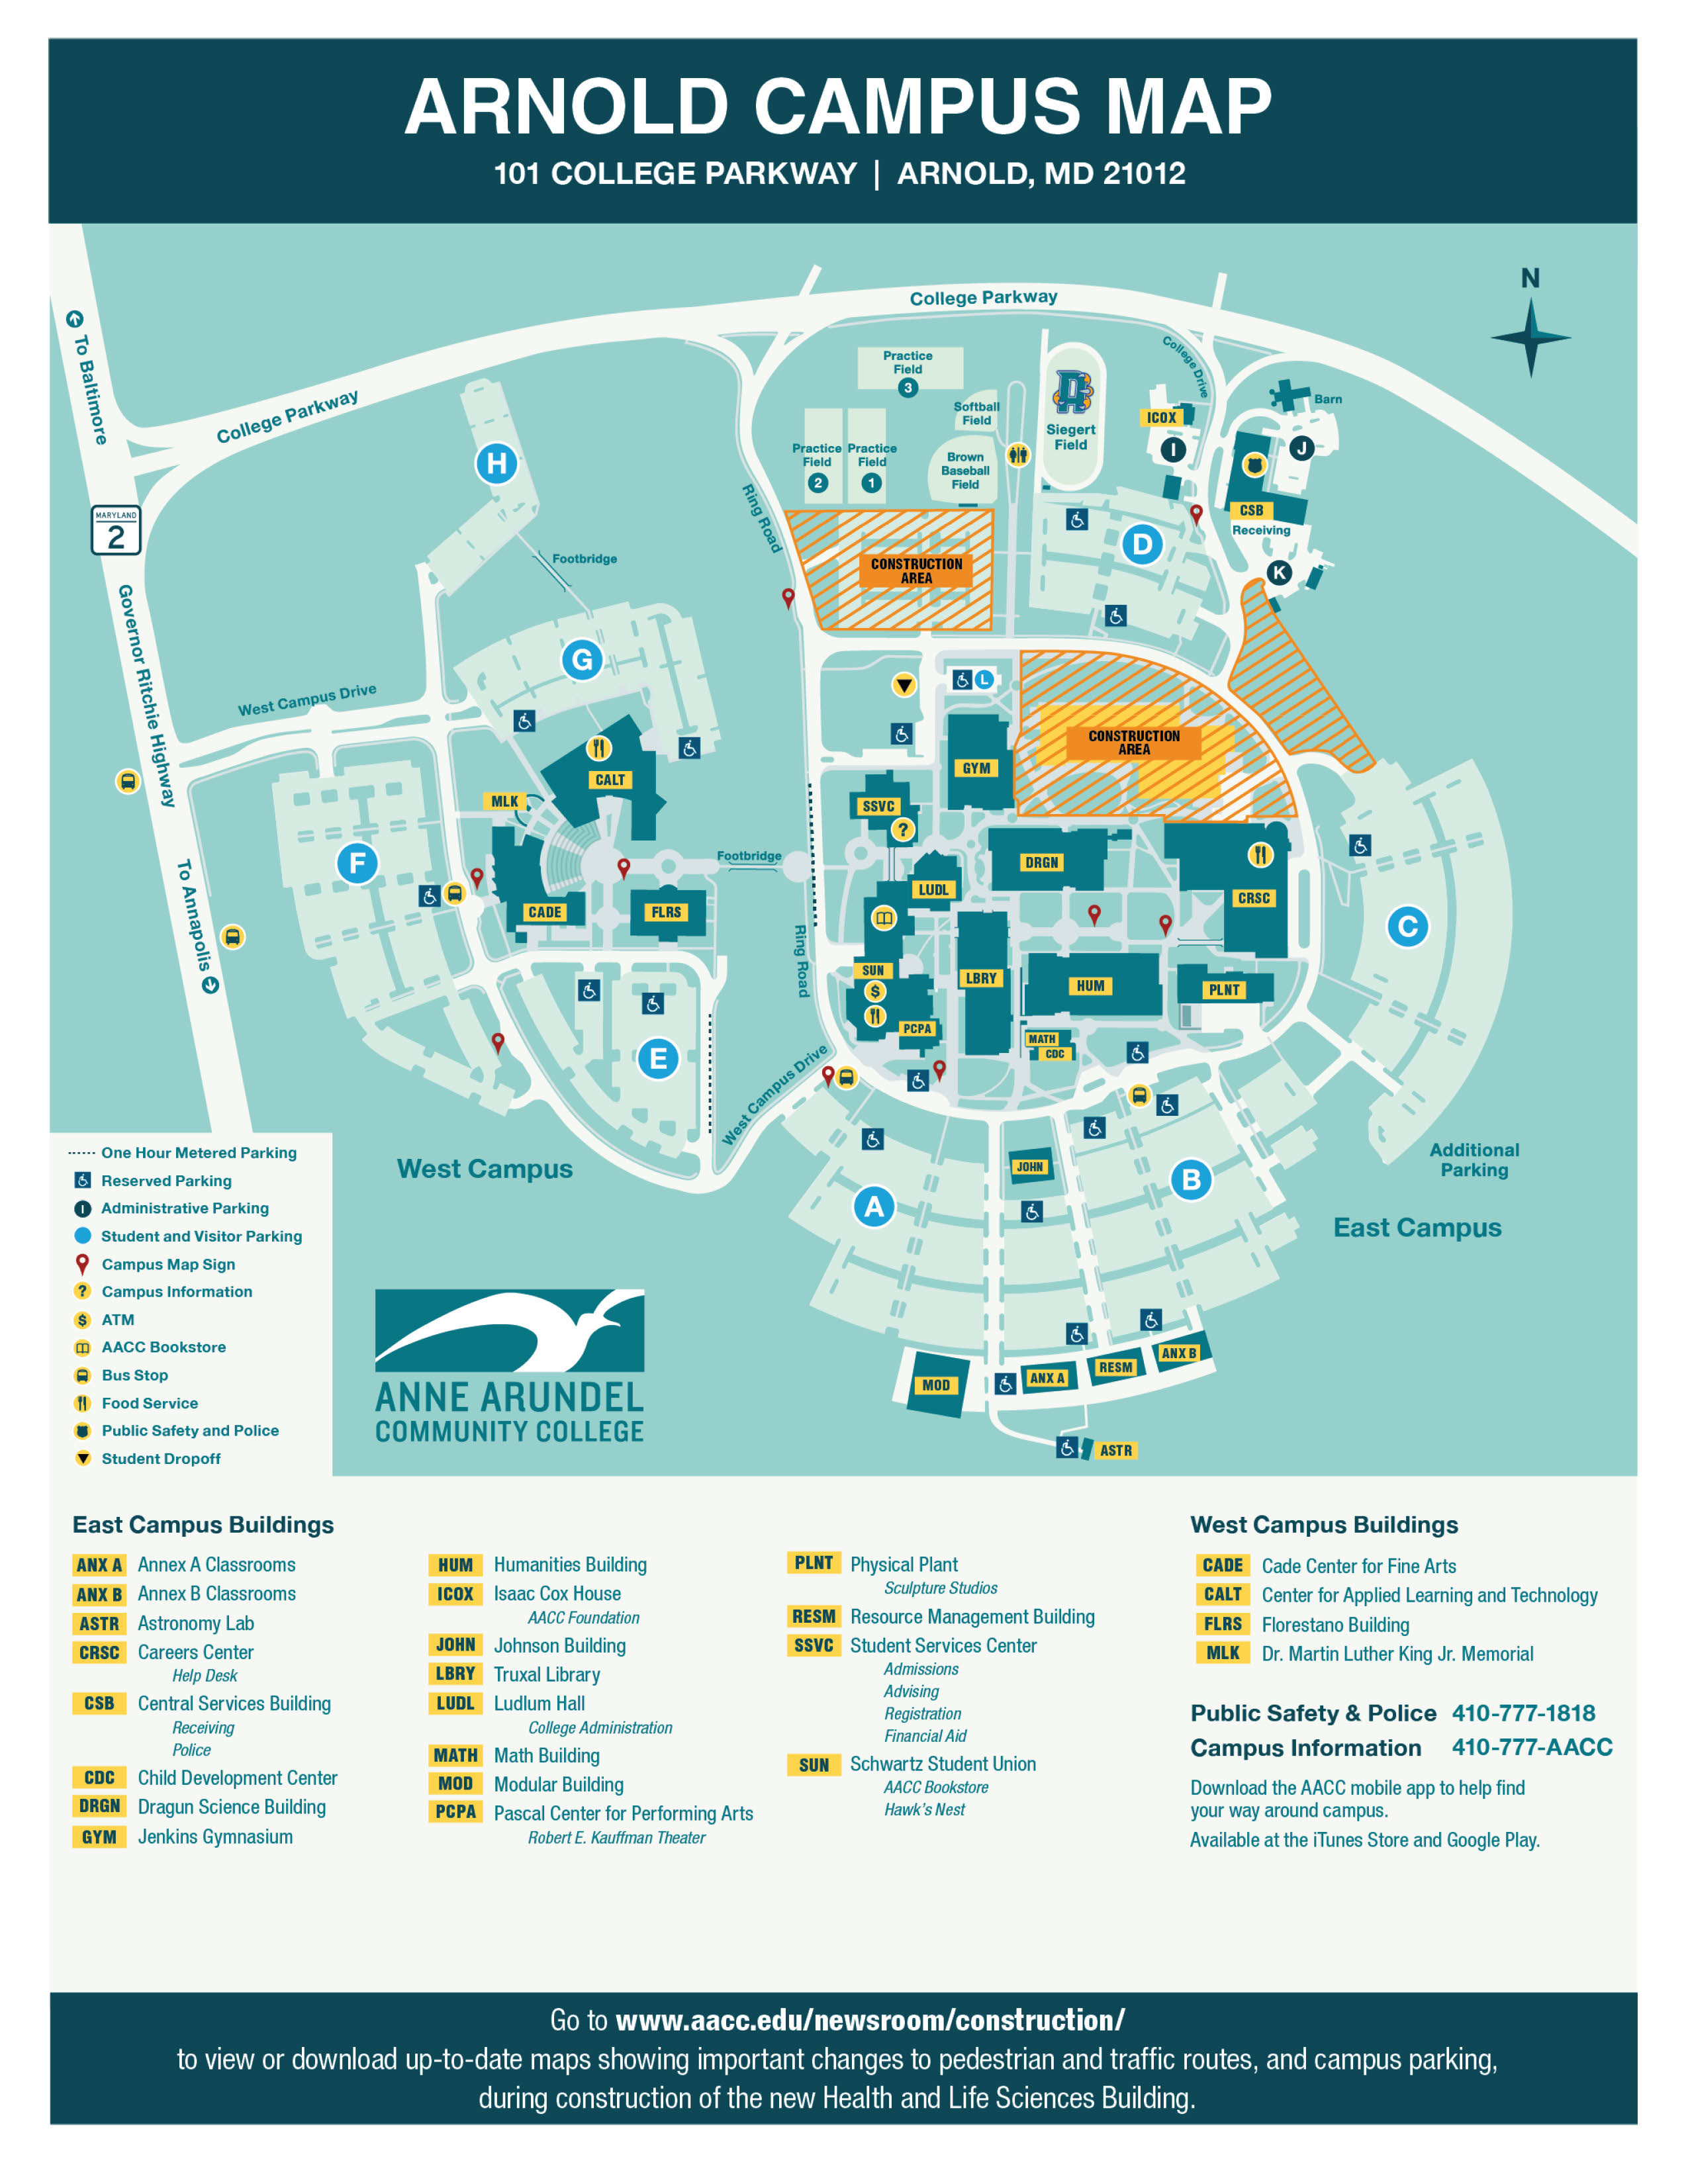 AACC Campus Map